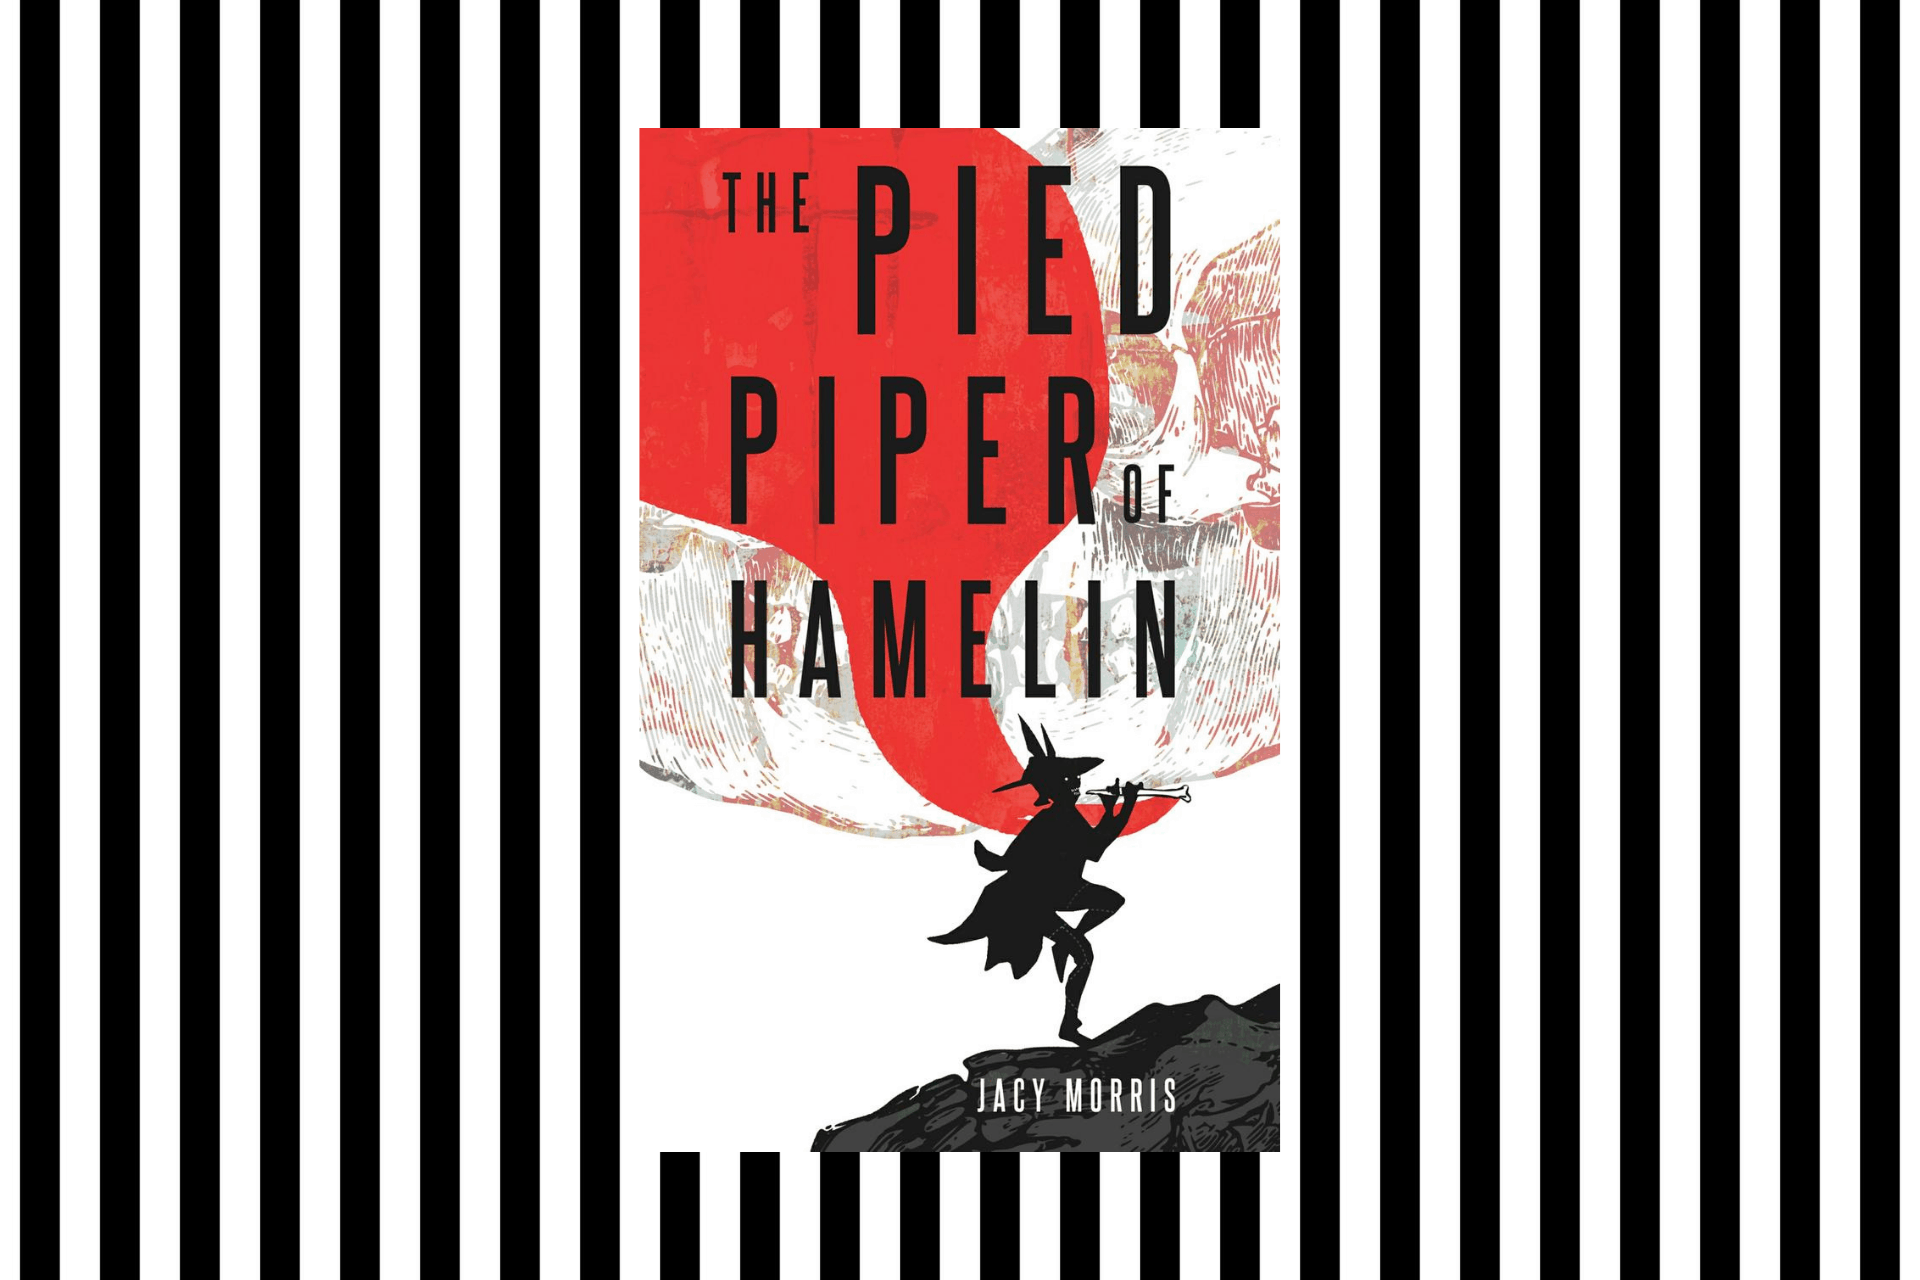 The cover of The Pied Piper of Hamelin by Jacy Morris